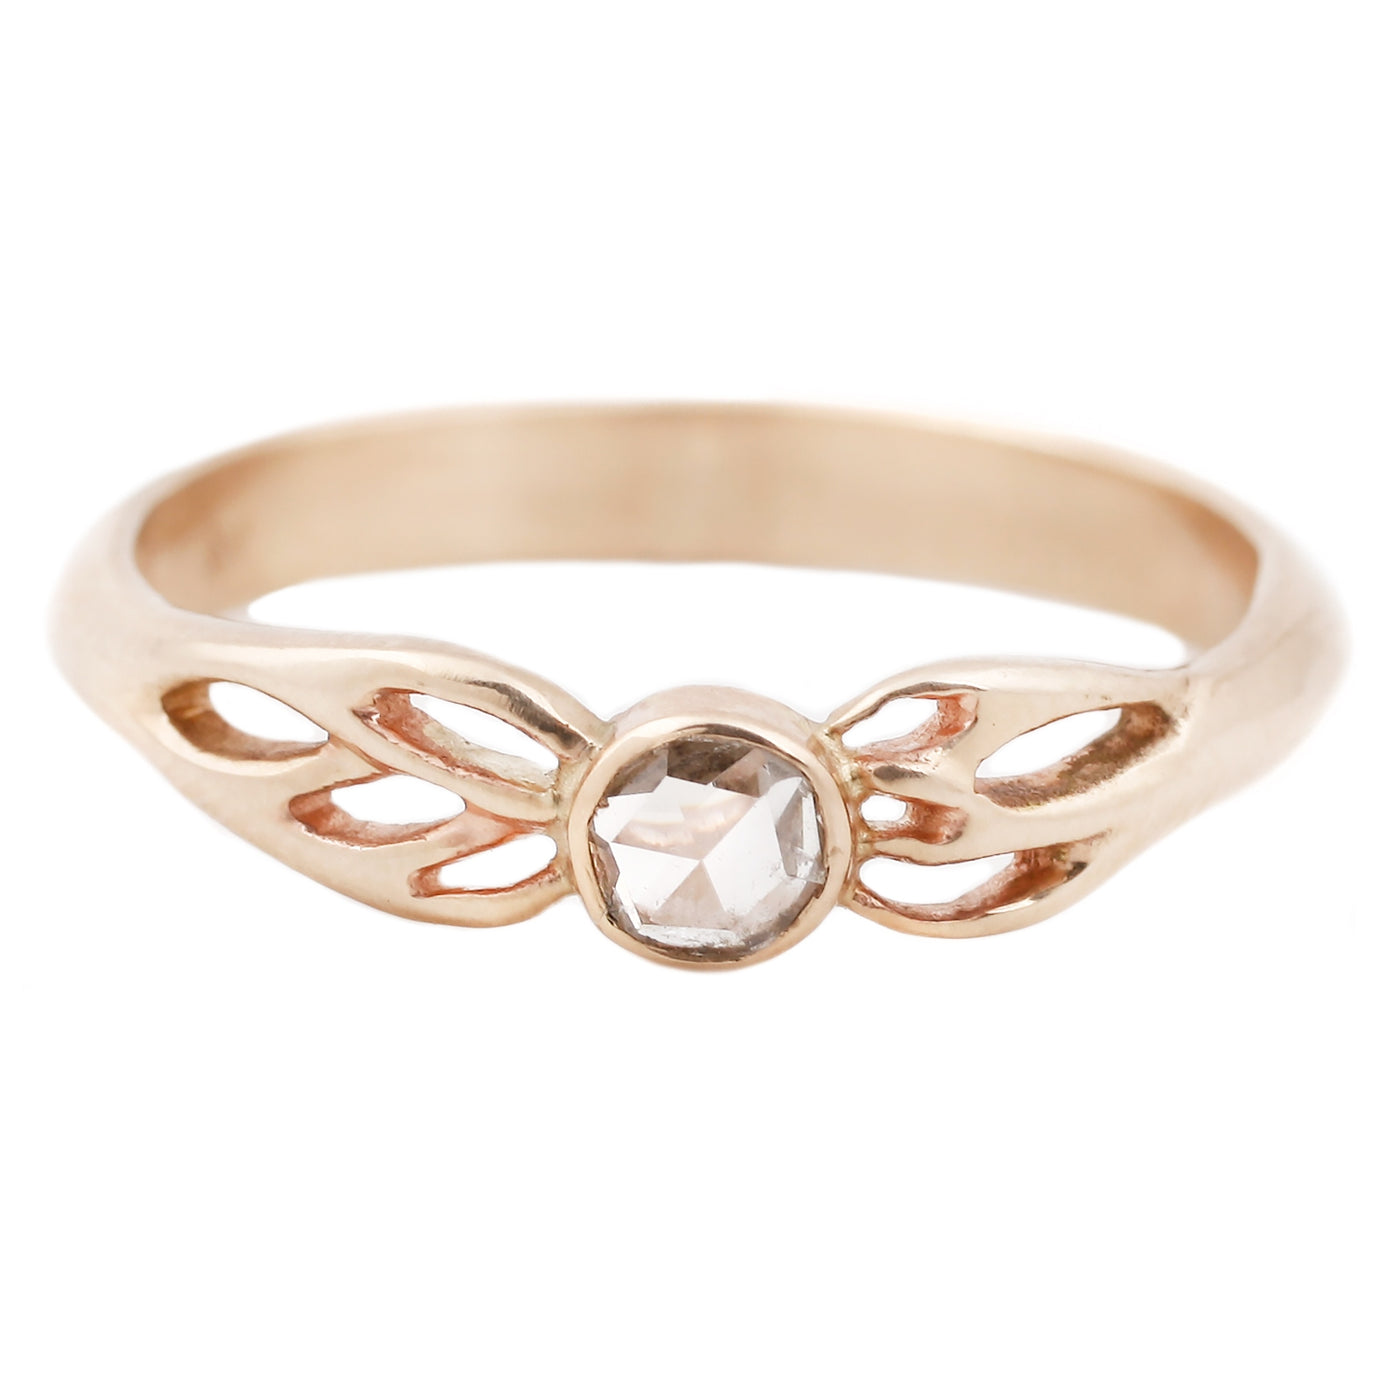 Luana Coonen Branch RIng